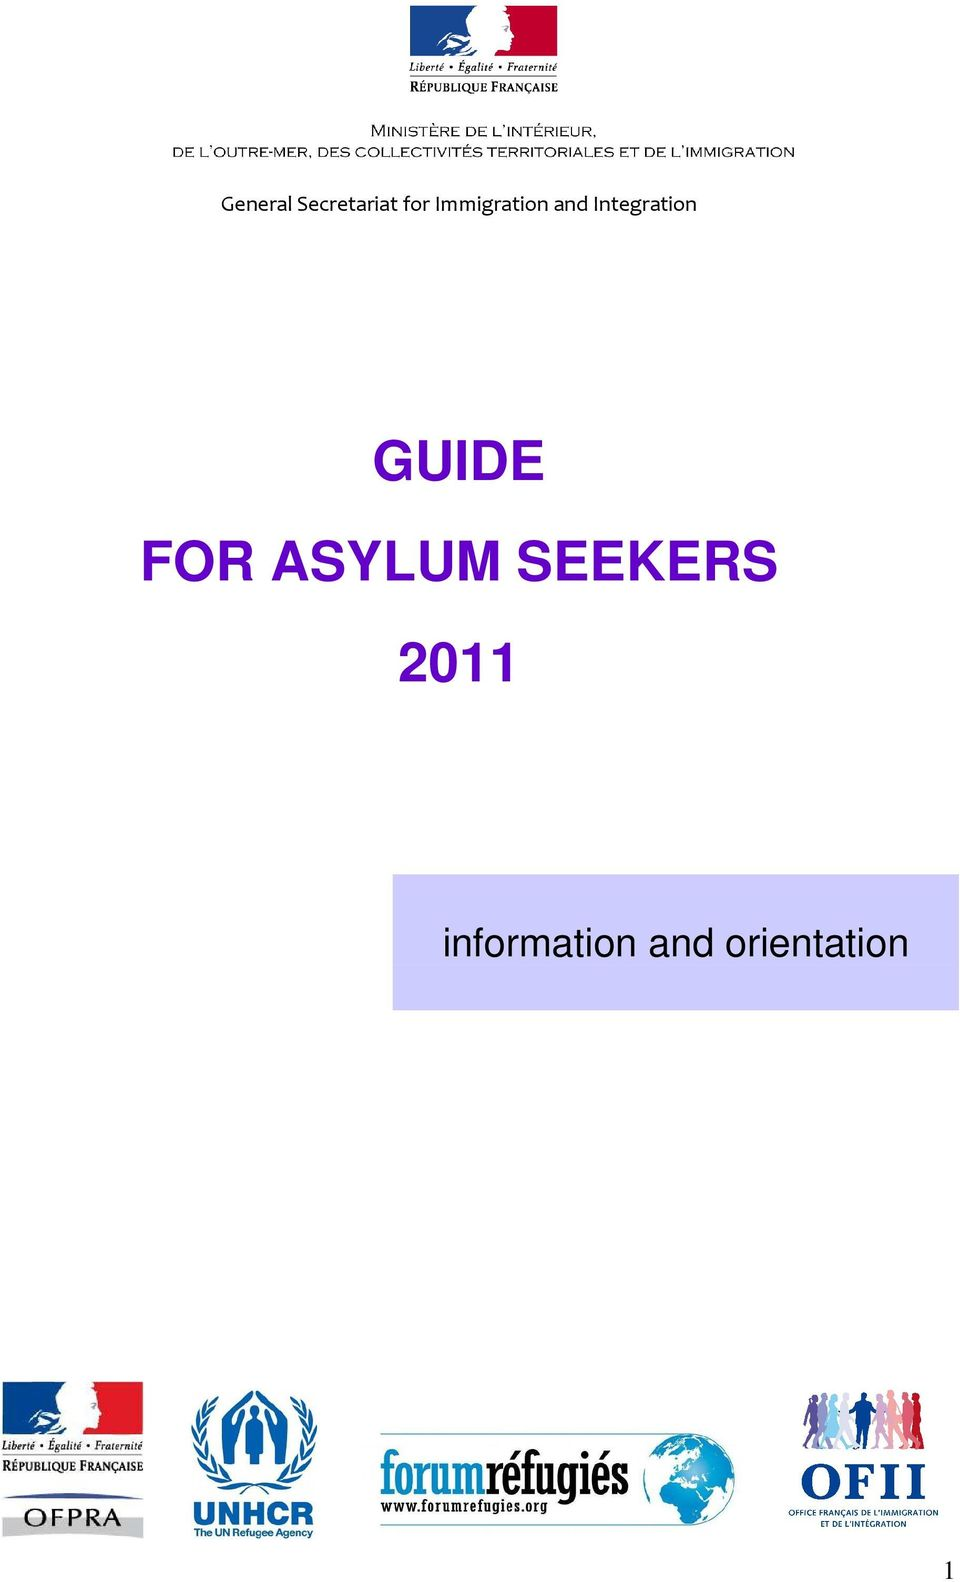 GUIDE FOR ASYLUM SEEKERS